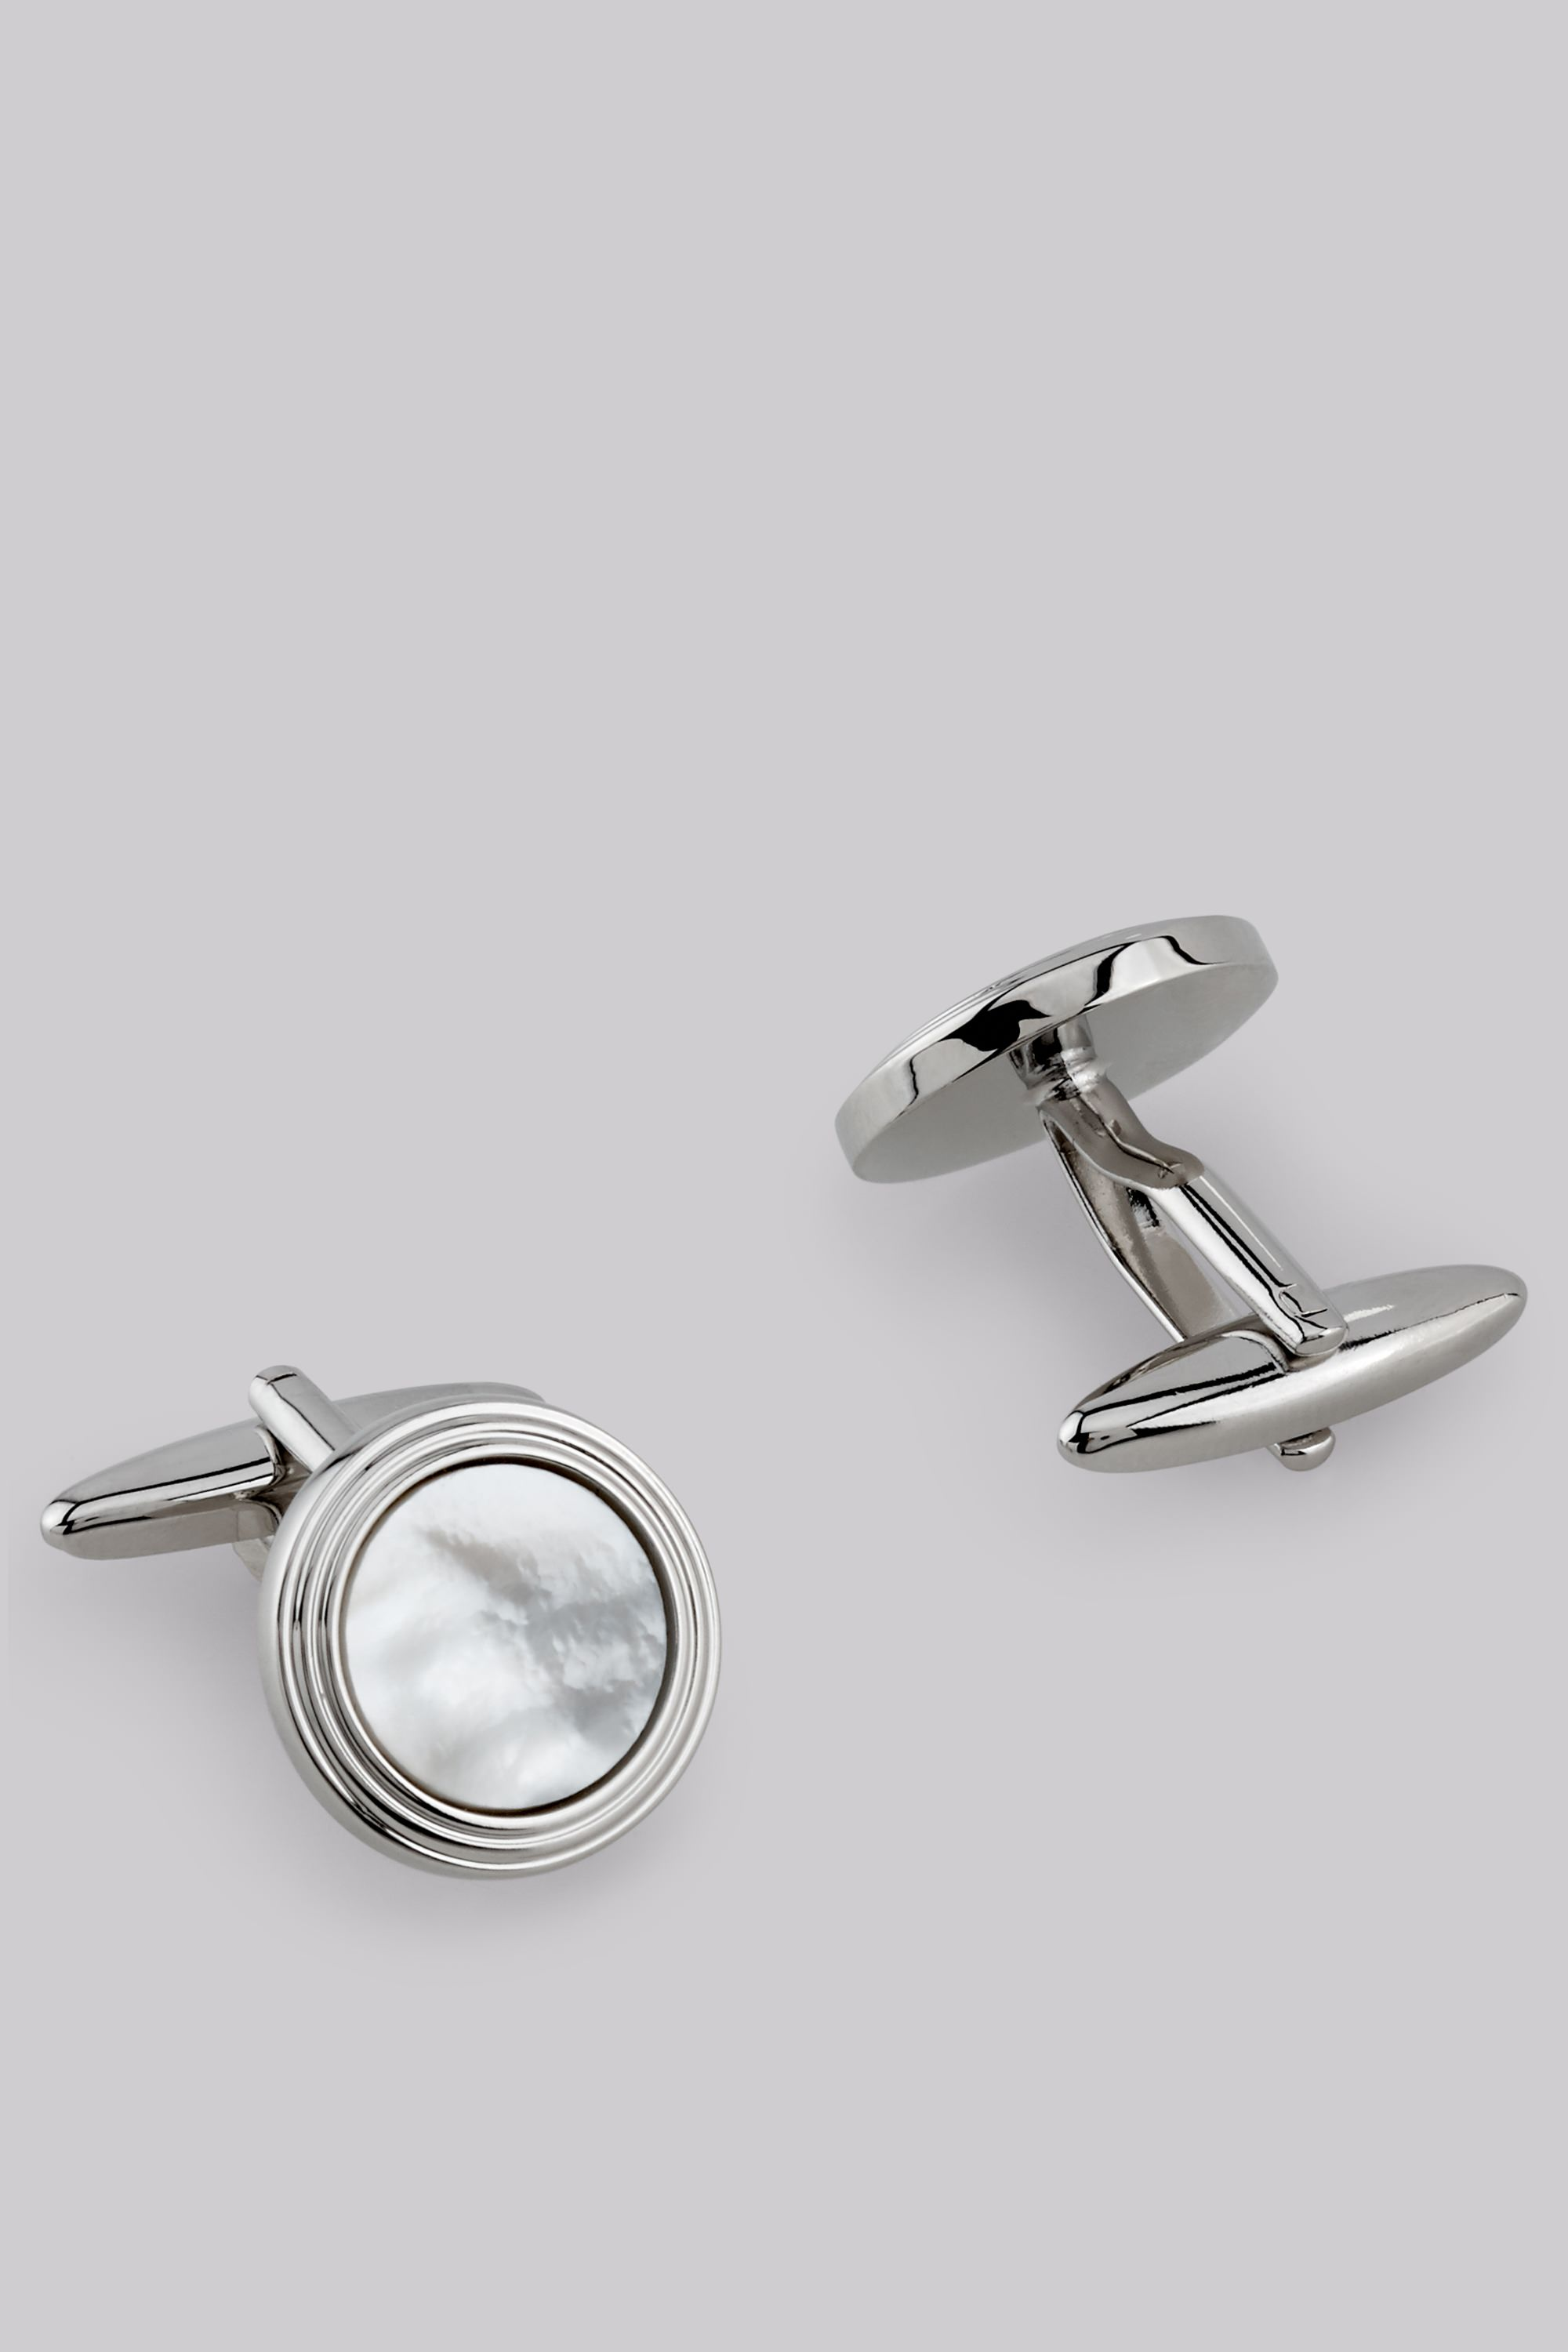 Moss Bros Moss 1851 Ivory Mother of Pearl Cufflinks